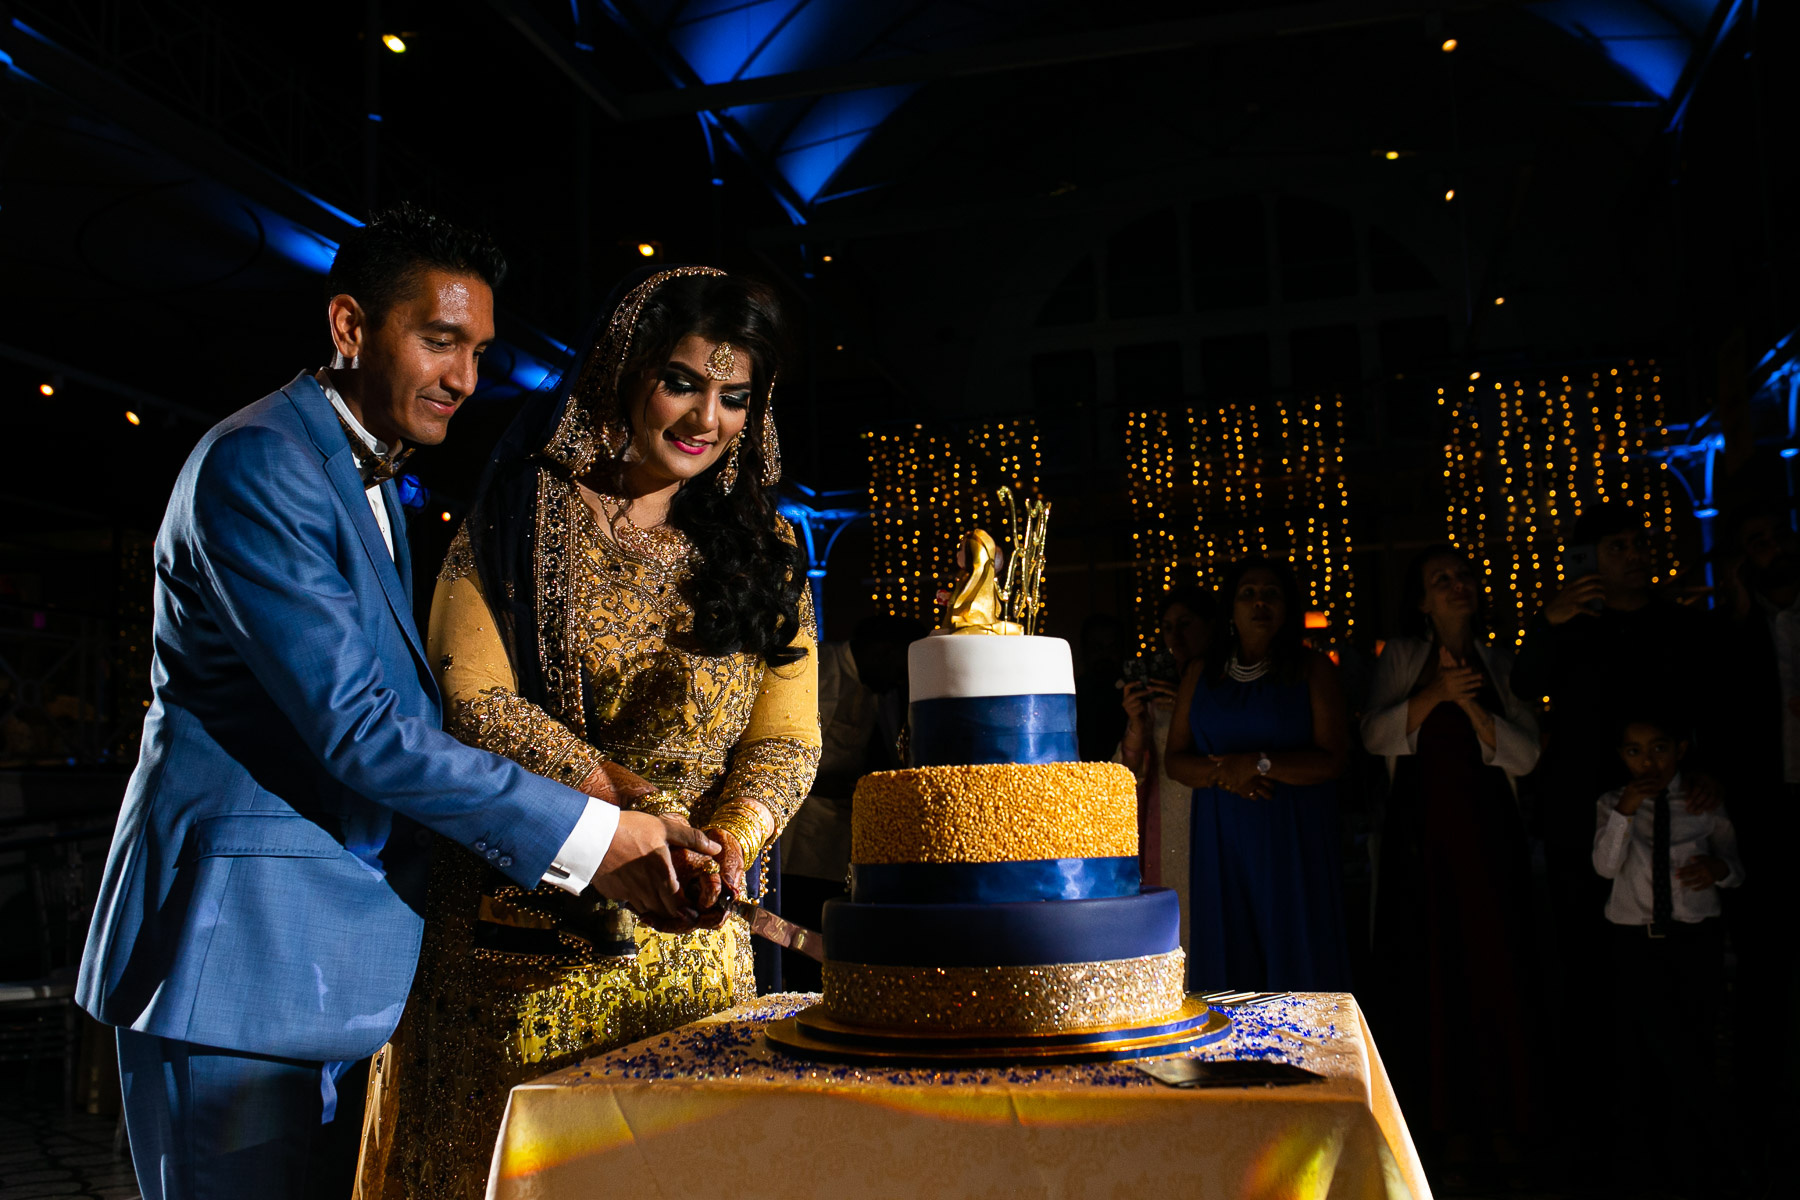 Relaxed bride and groom cutting cake